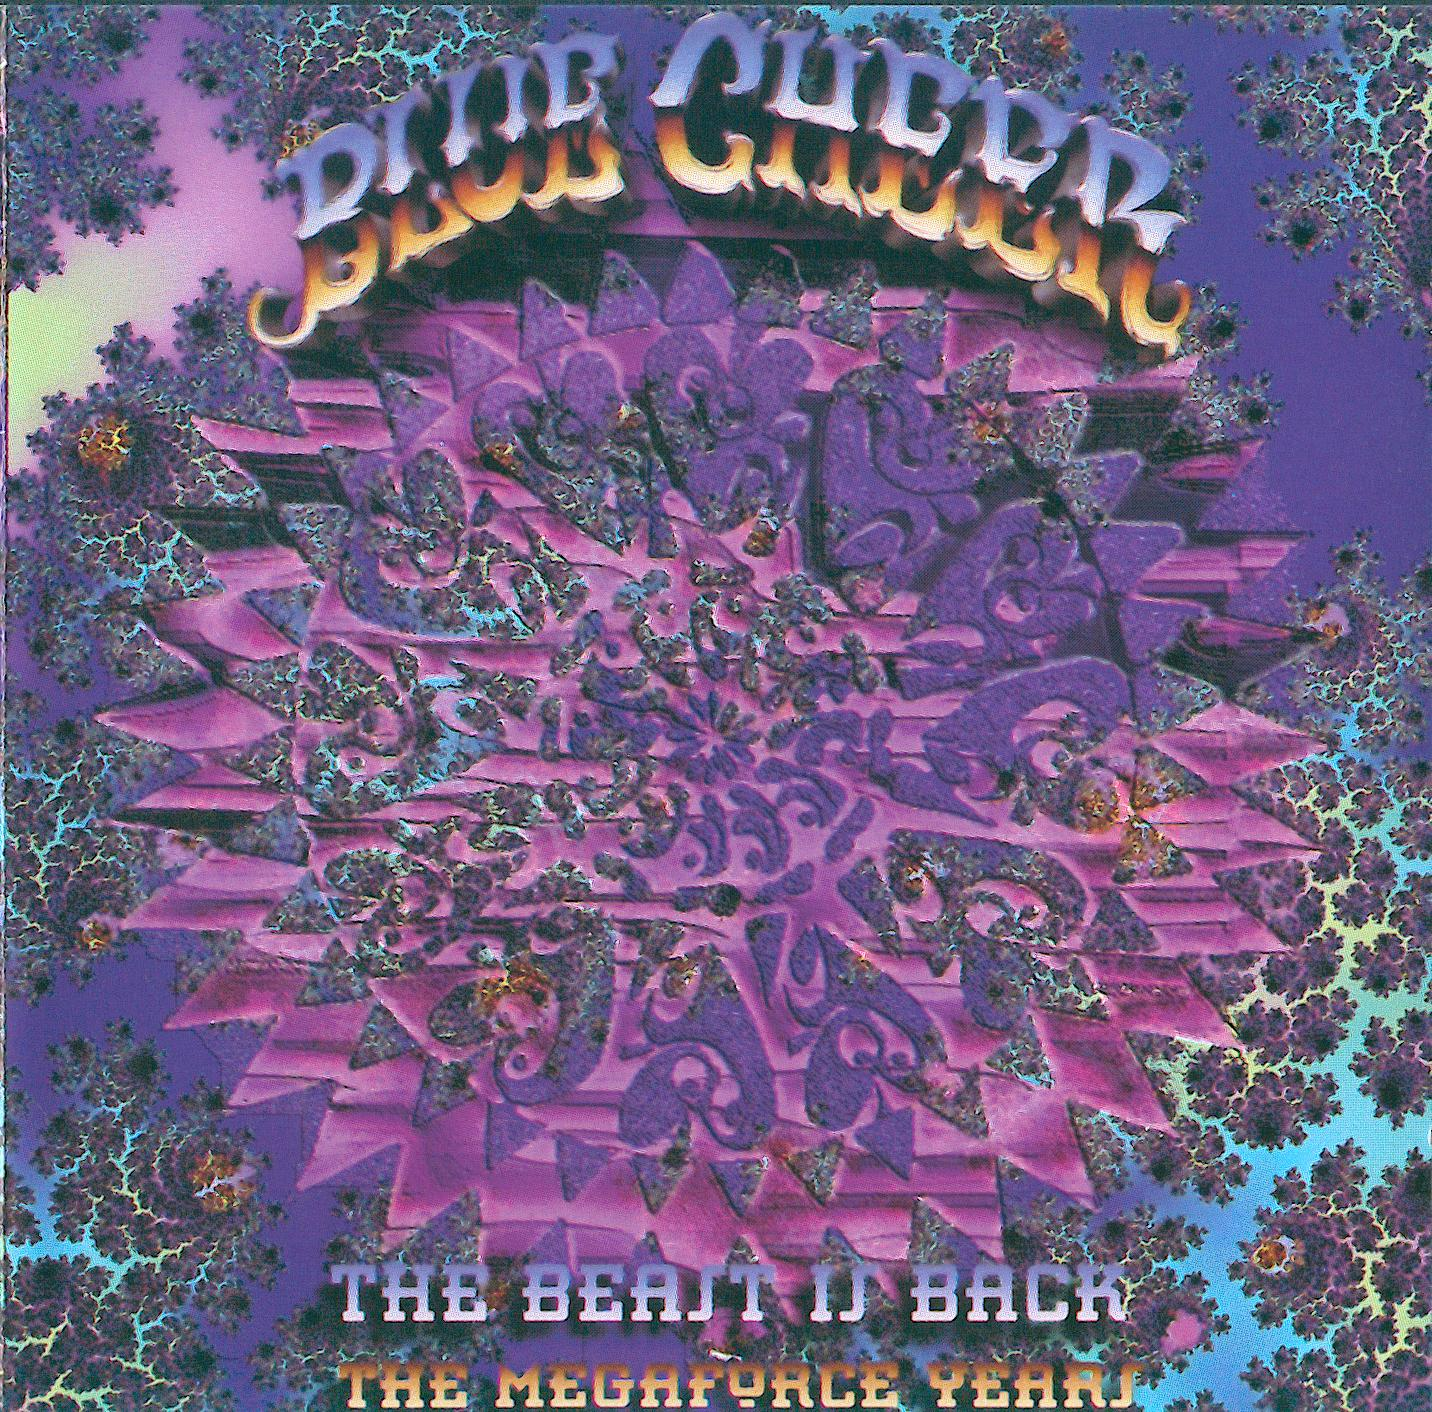 Blue Cheer - The Beast Is Back: The Megaforce Years - 1984